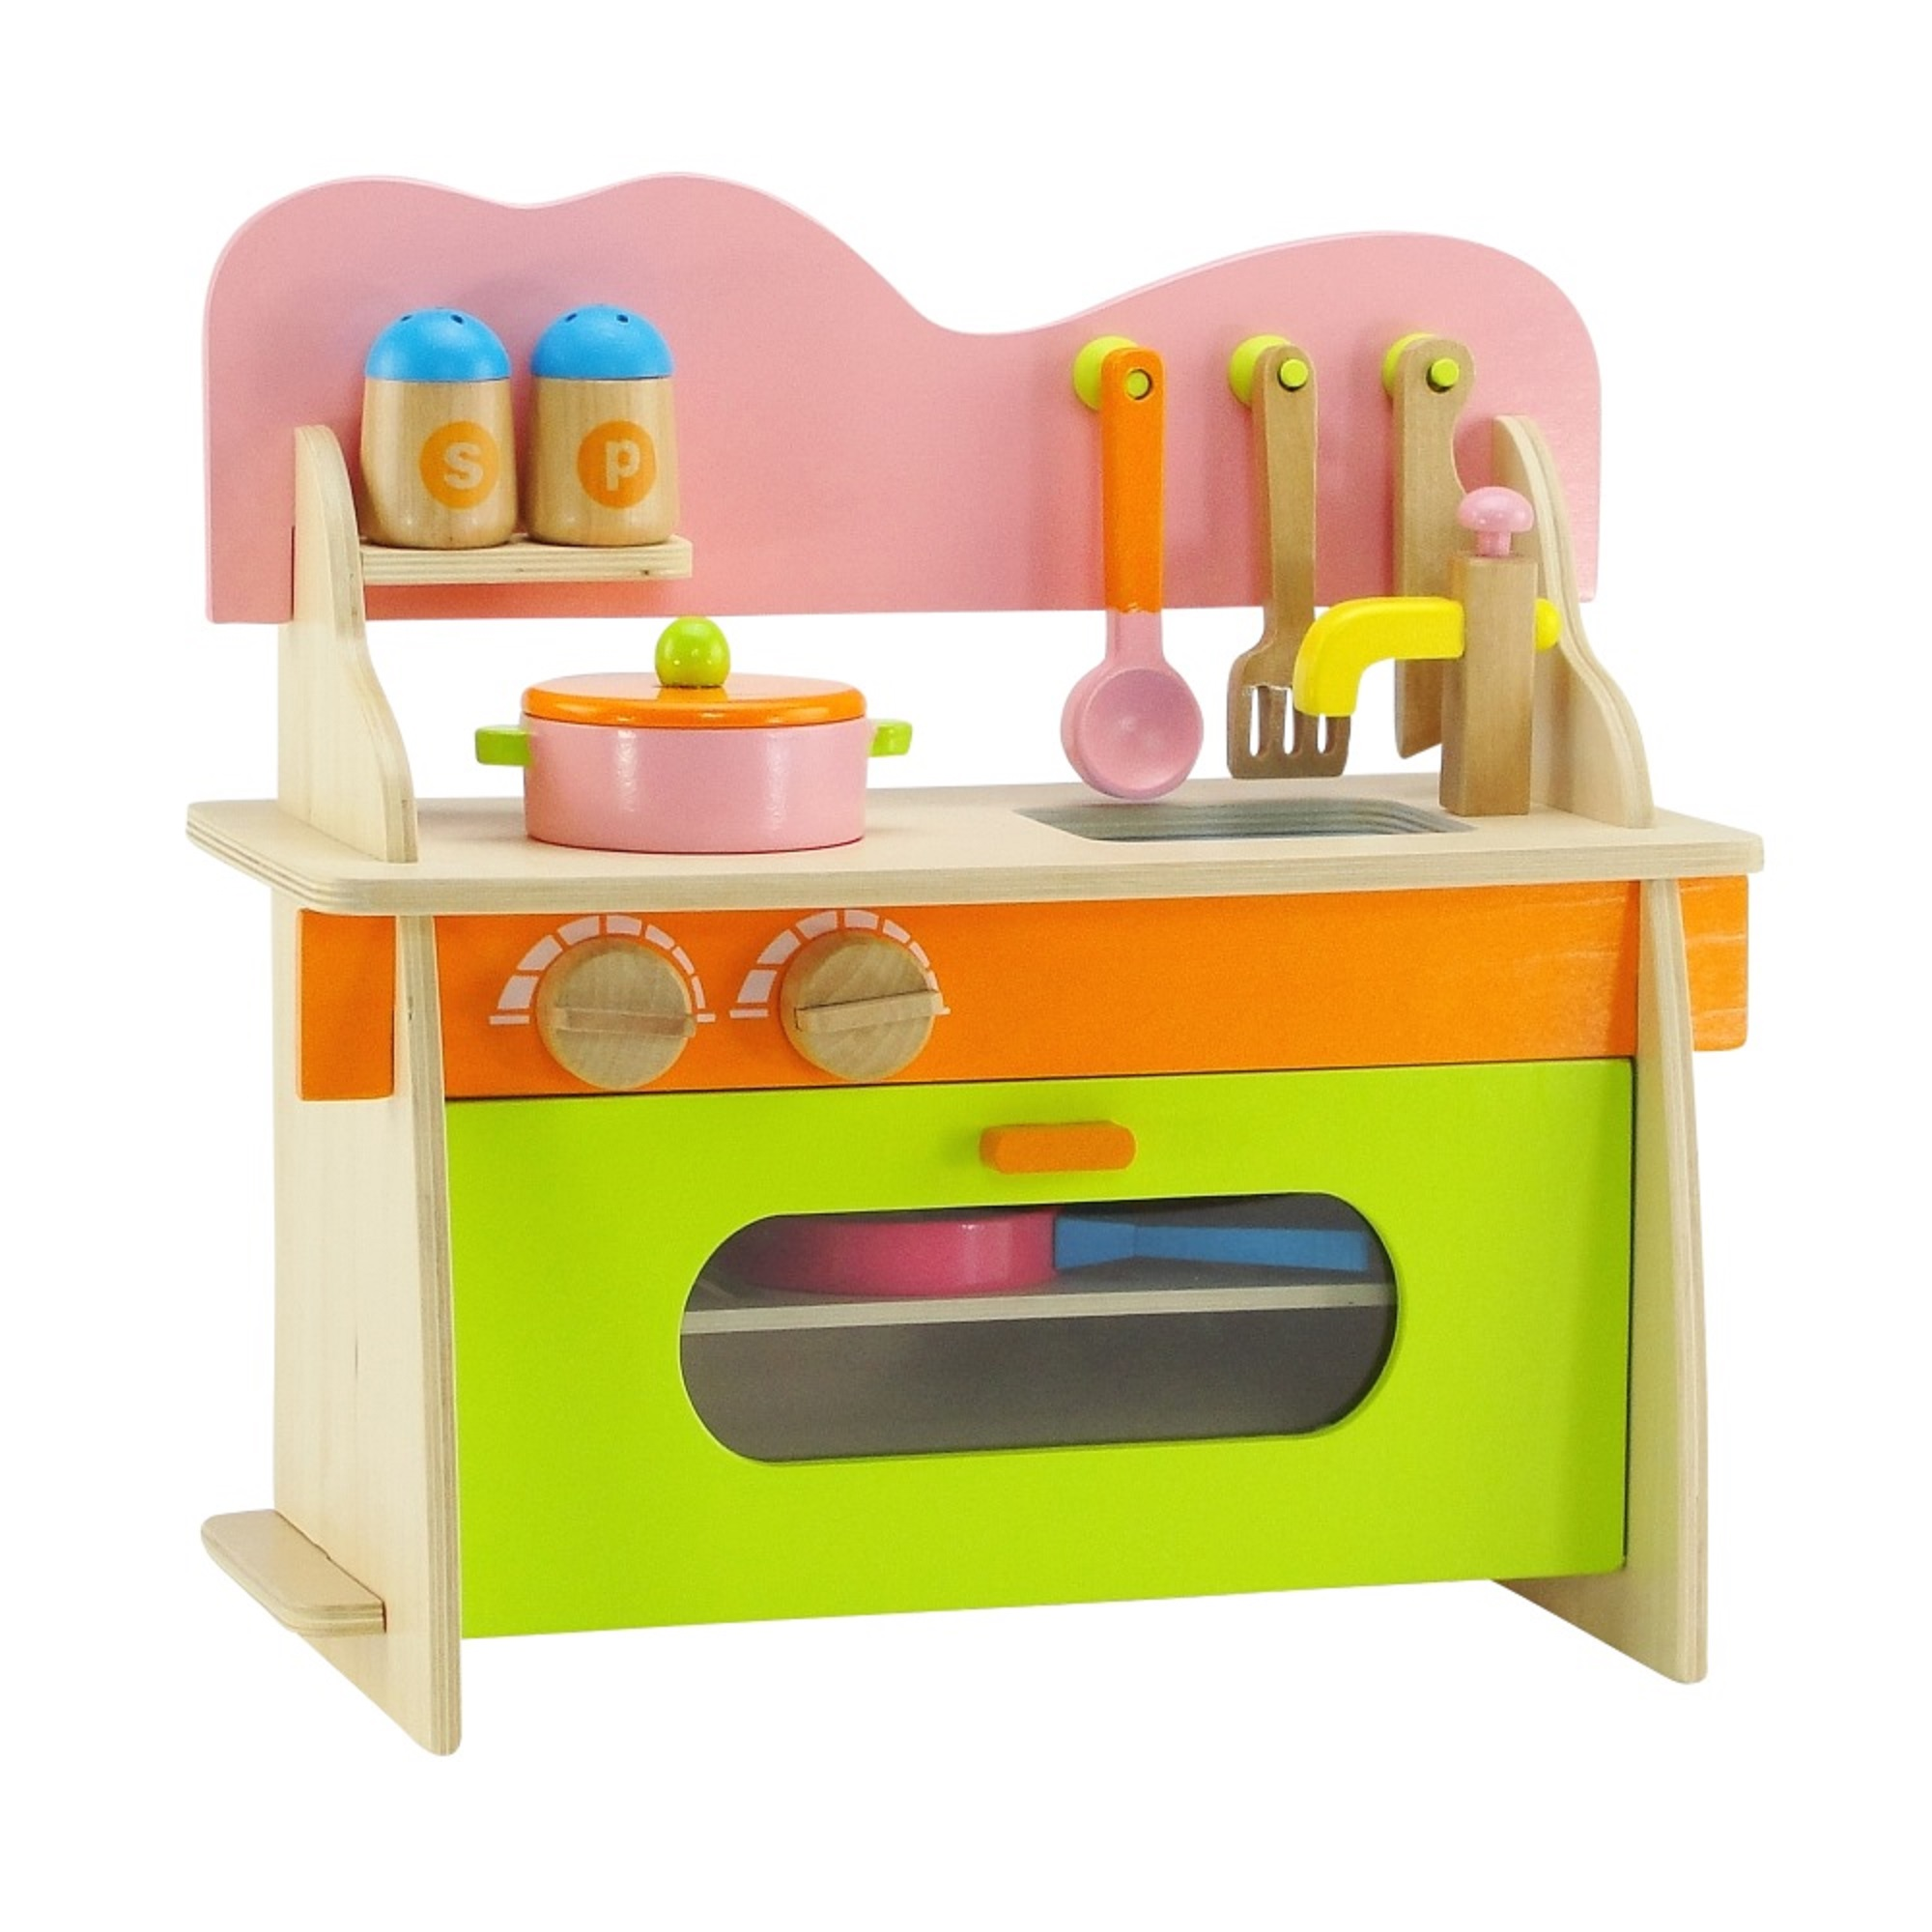 18 Inch Doll Furniture Kitchen Set With Oven Stove Sink And